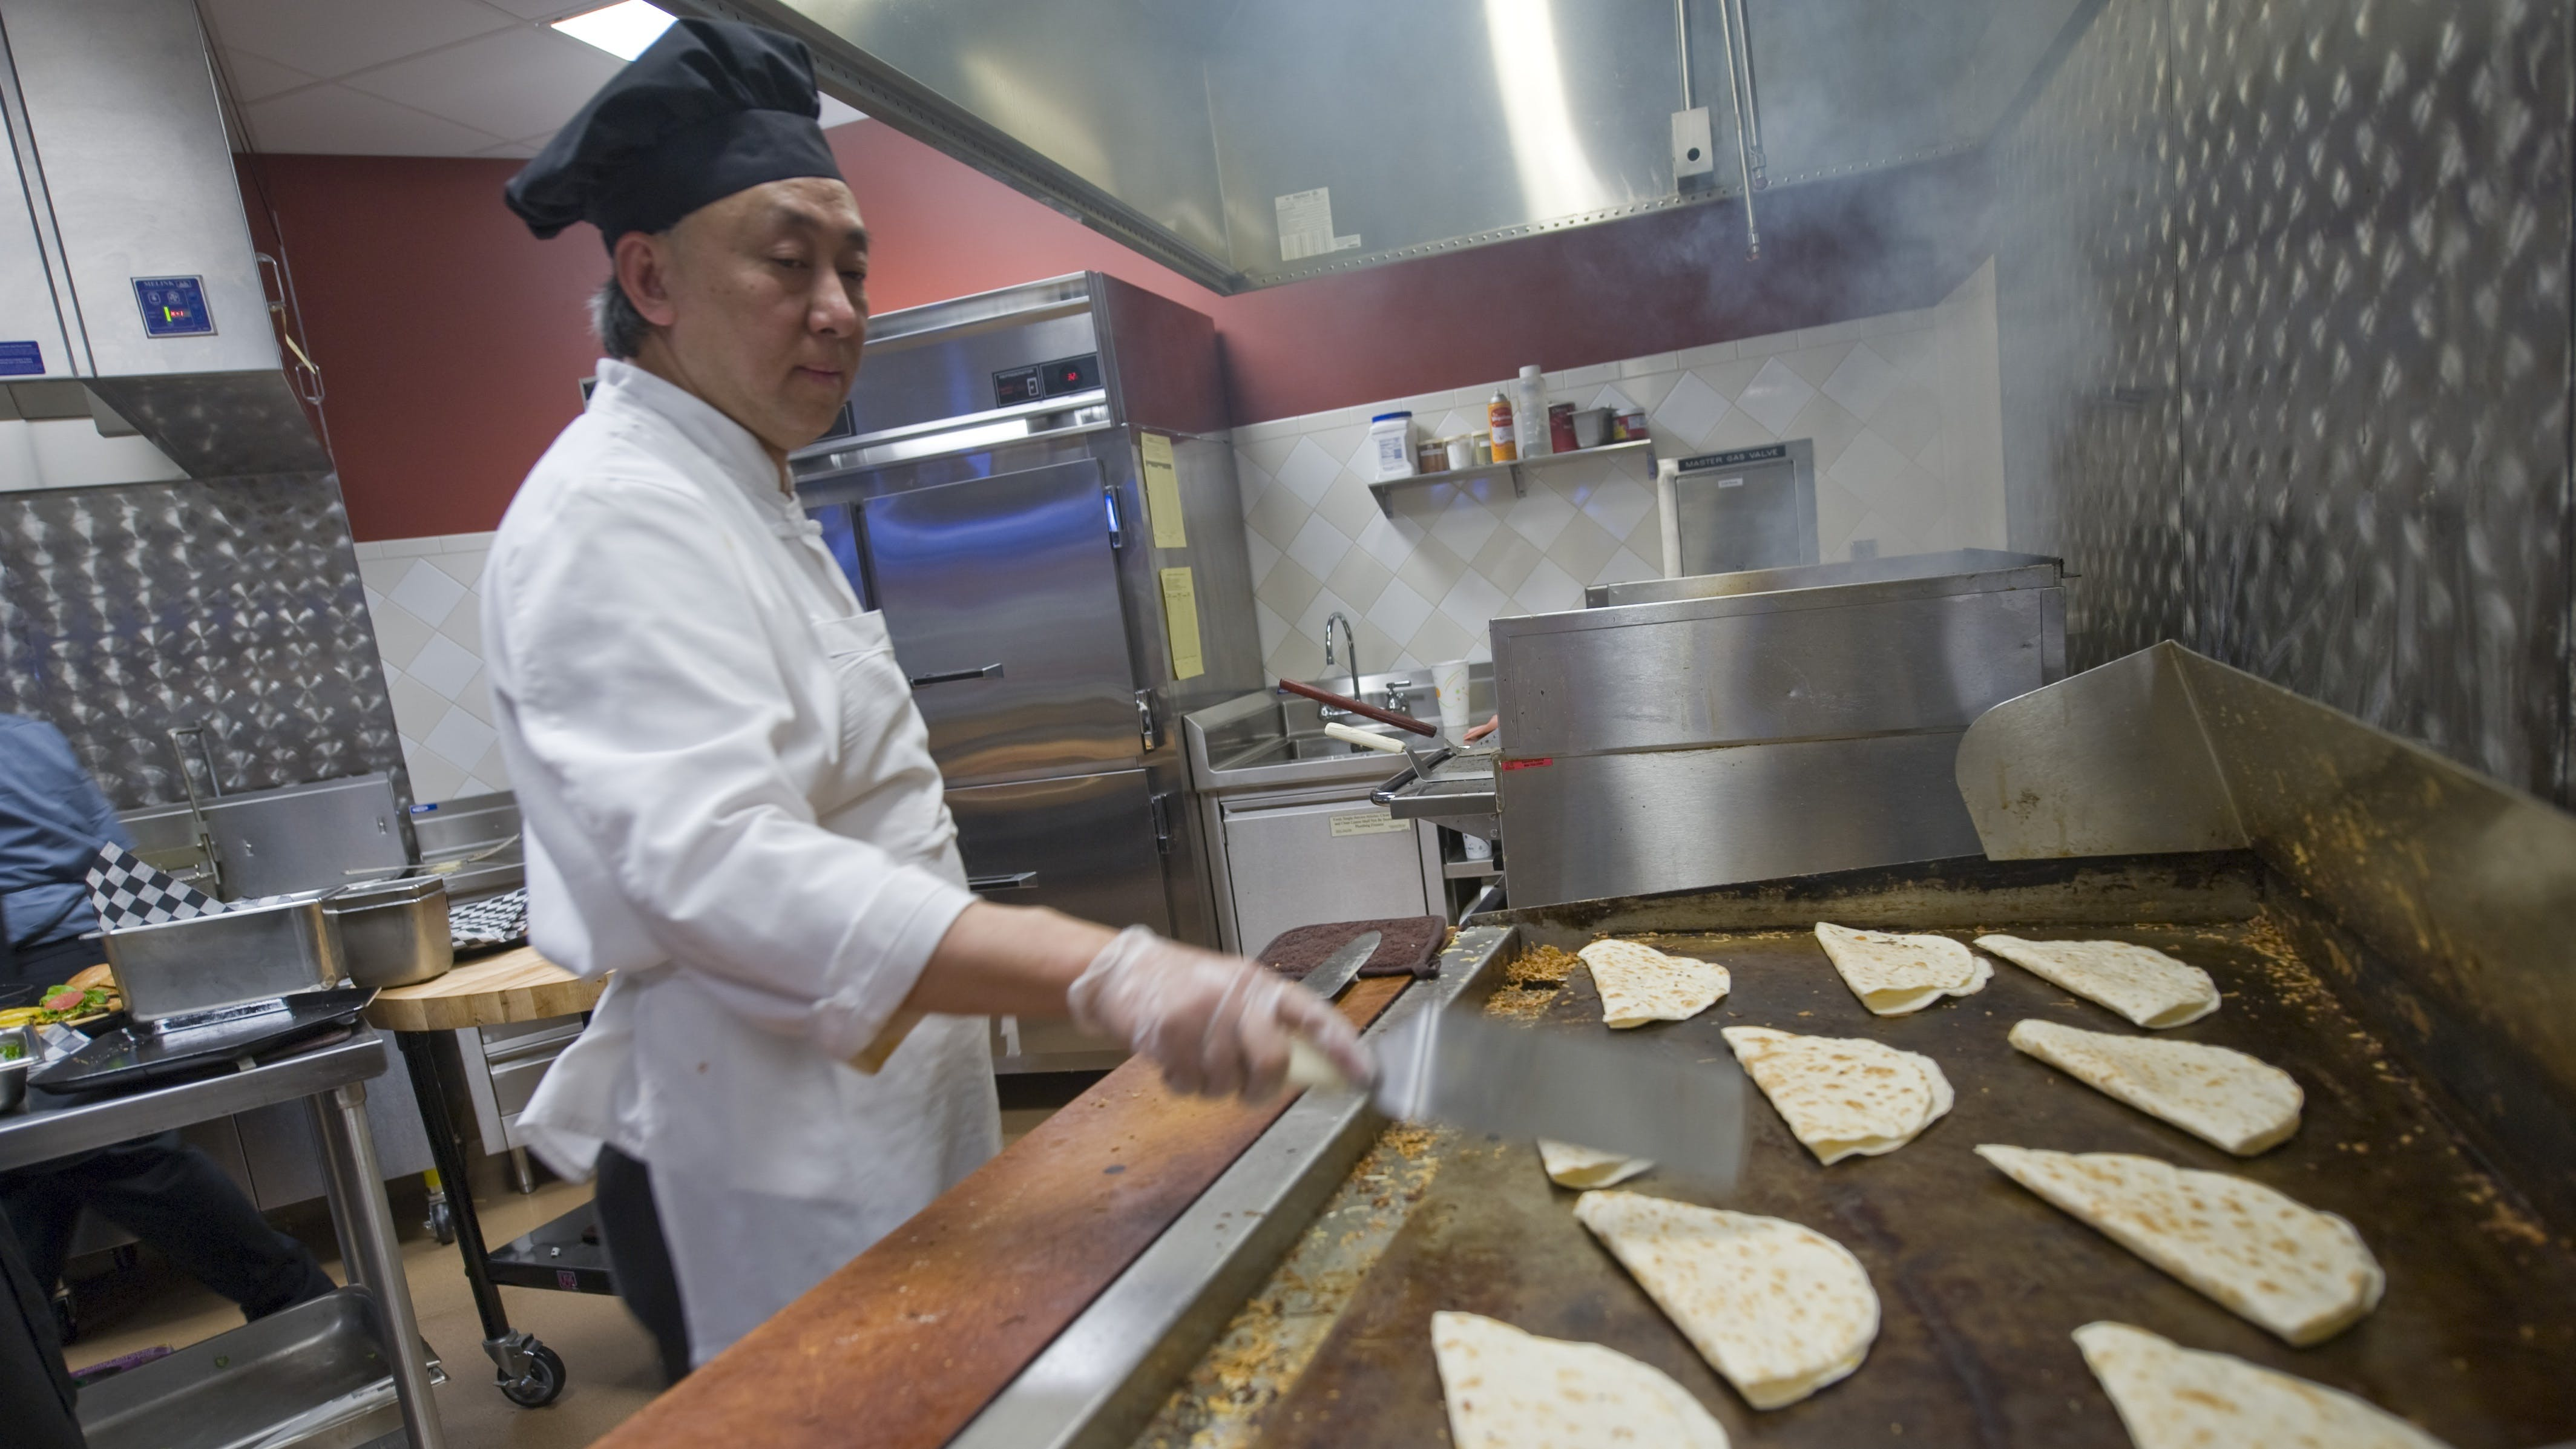 Bethel's Food Service Scores in Top 25 in Country